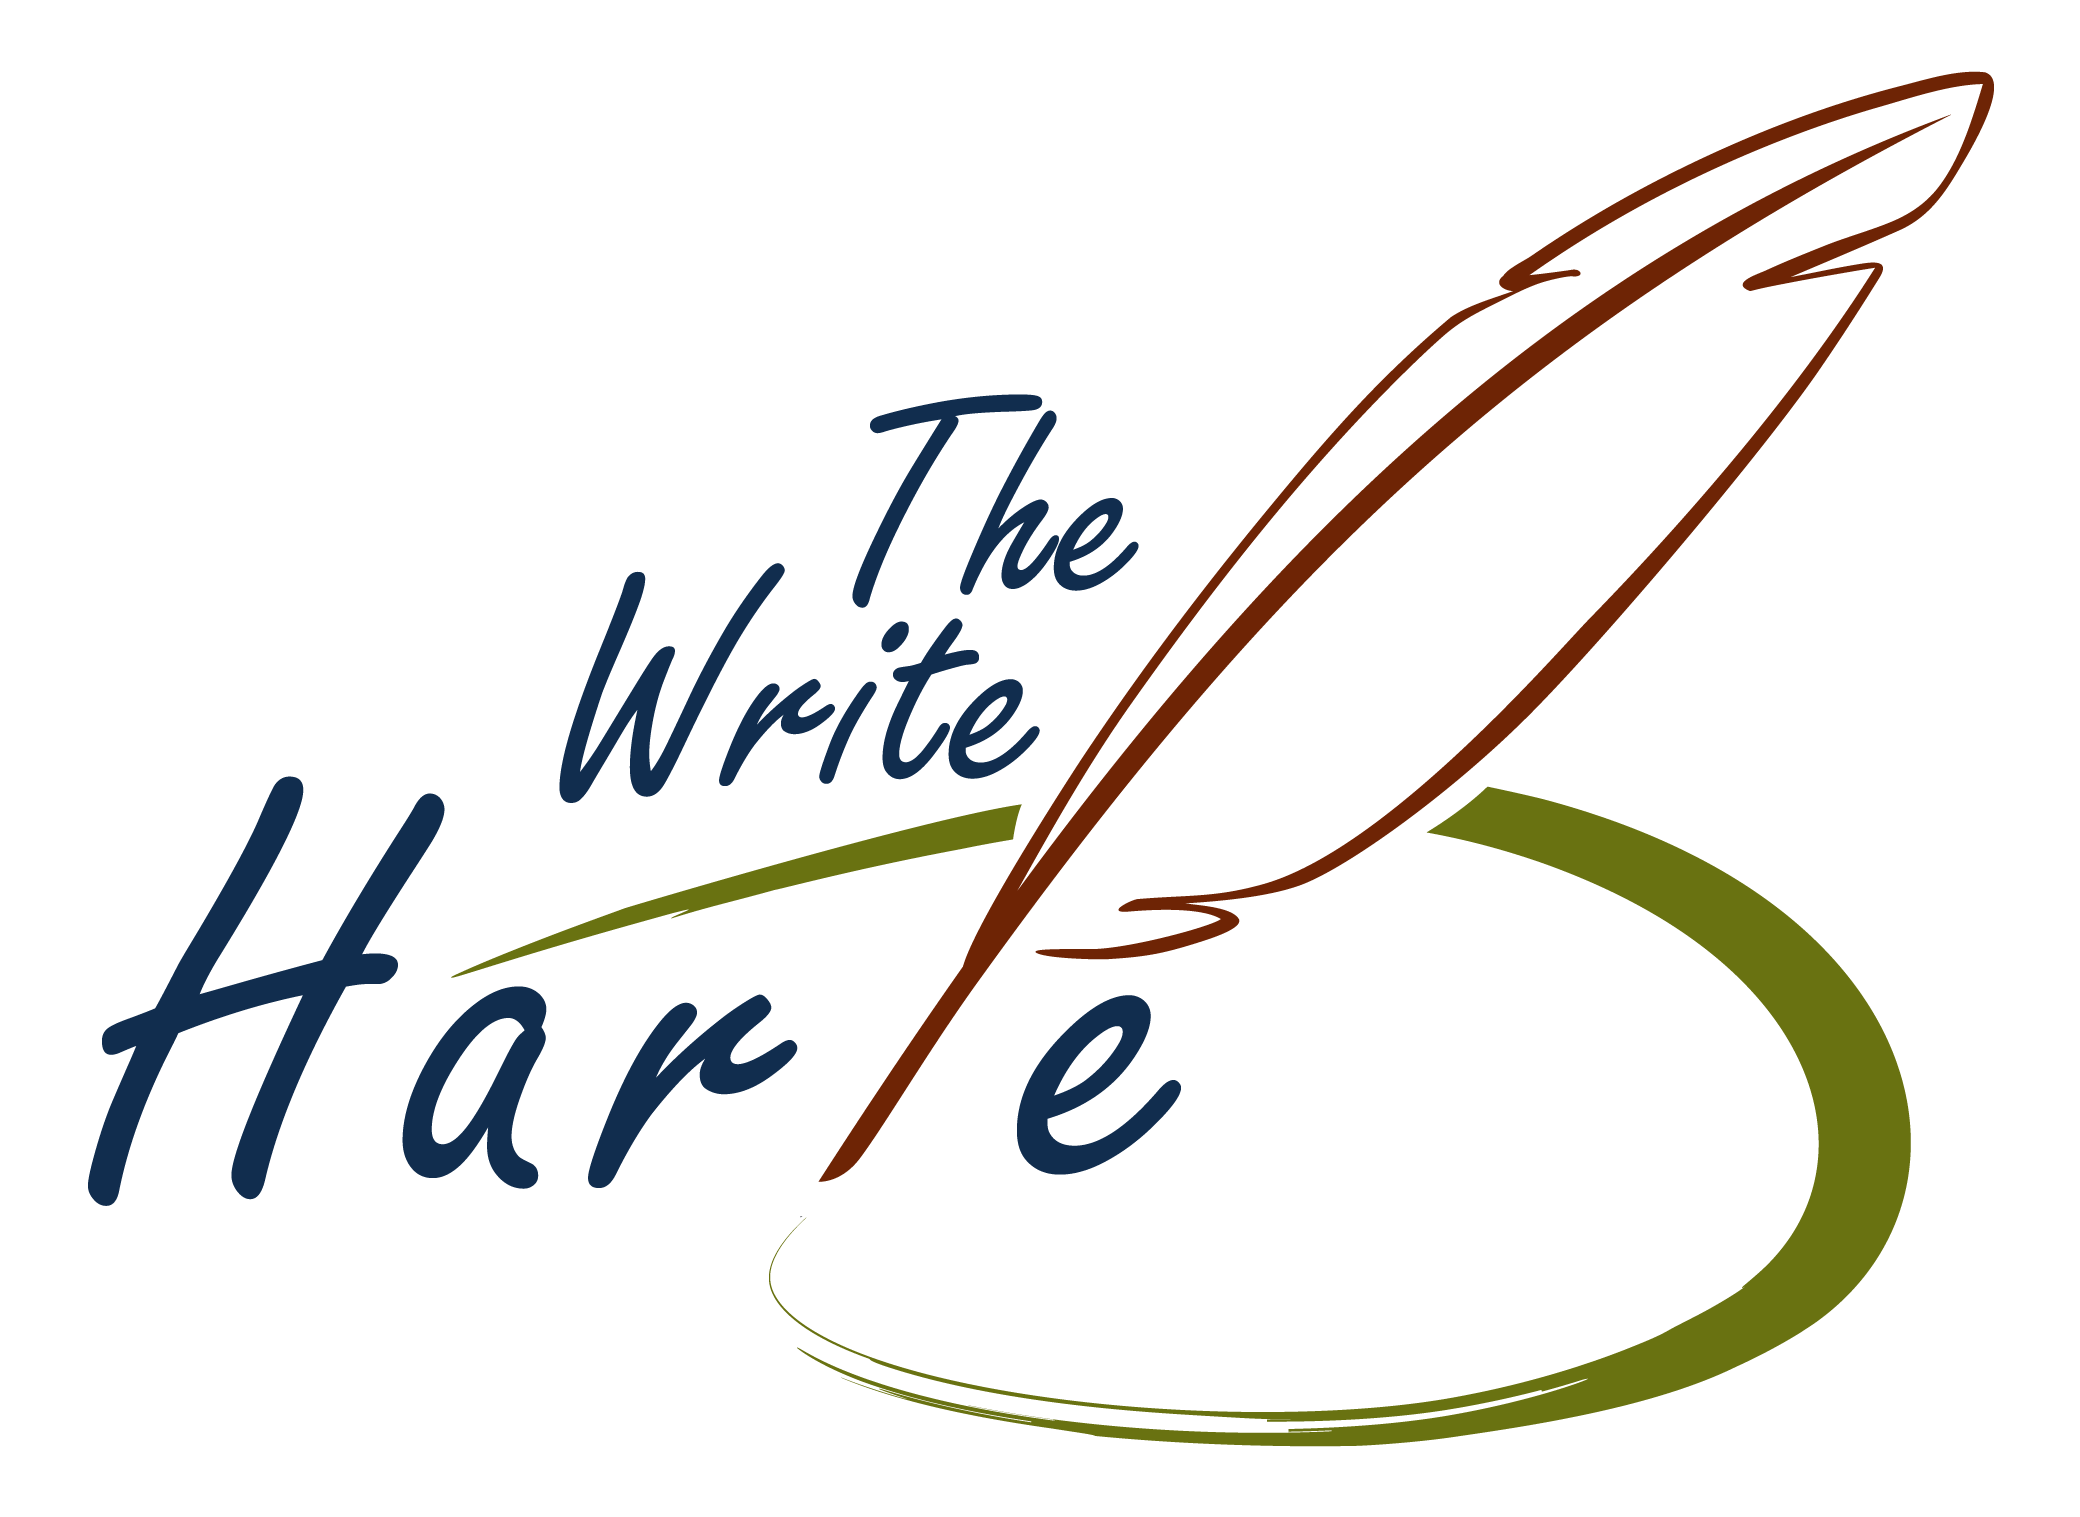 The Write Harle